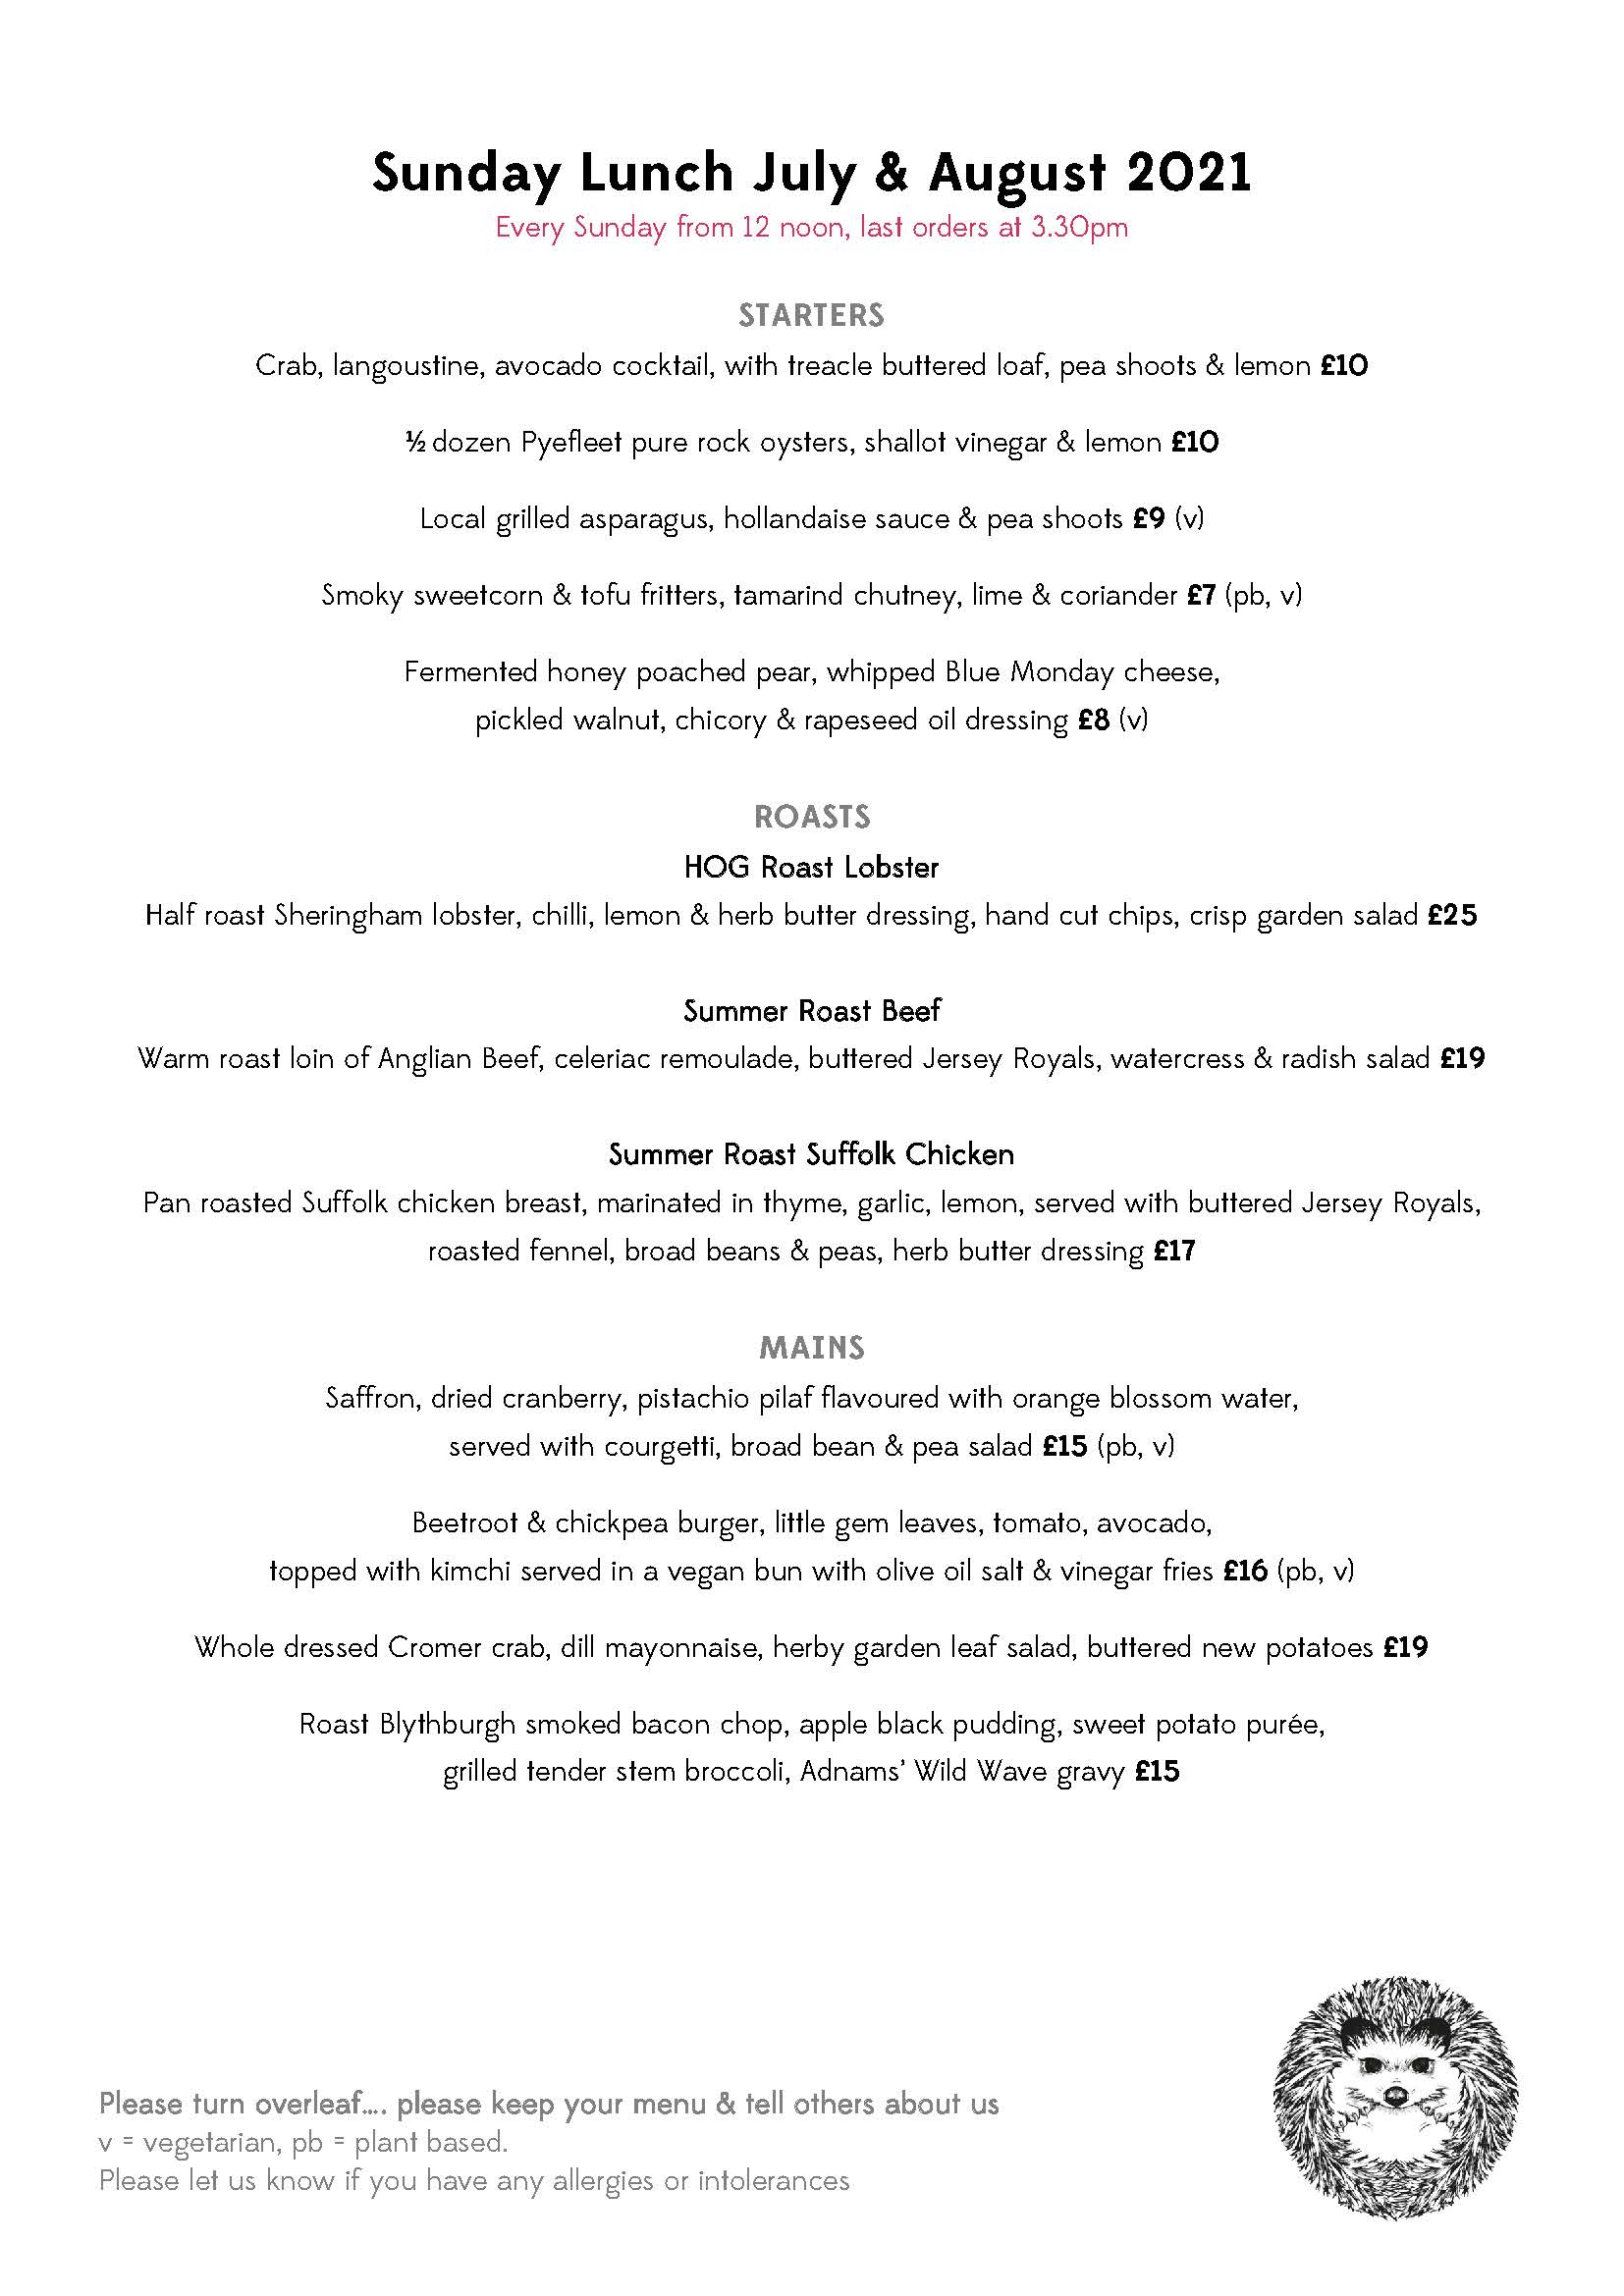 Sunday Lunch Menu July August 1